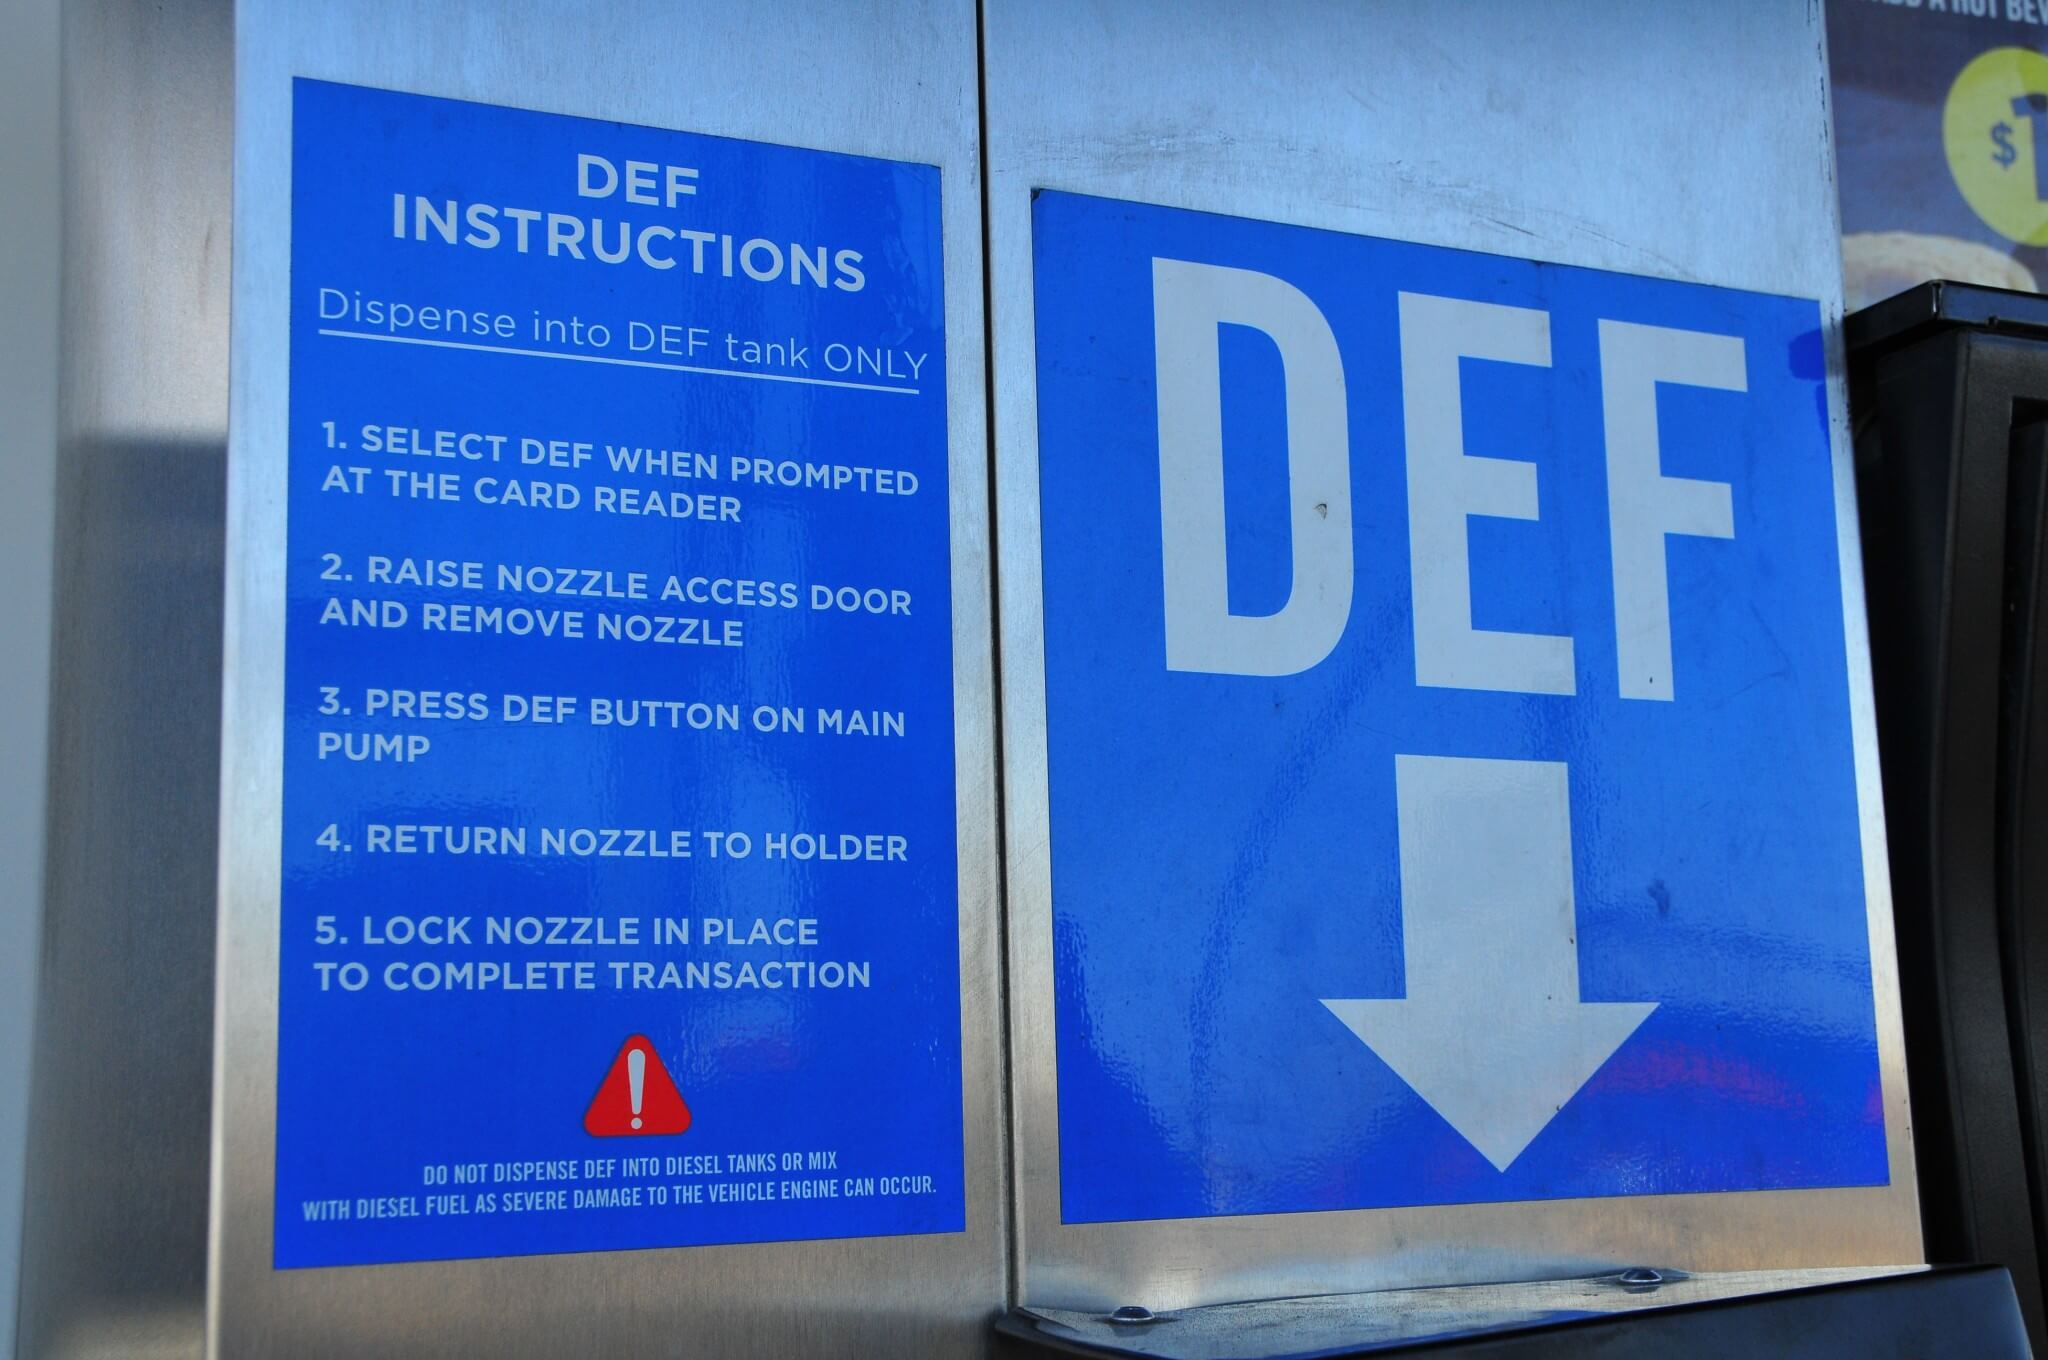 6. DEF fill stations will have a sign with instructions. The most important is seen here. In short, DEF is not to be mixed with diesel fuel. You definitely don't want to accidentally put DEF in your diesel tank. Cleaning the fuel system after this mistake is costly.